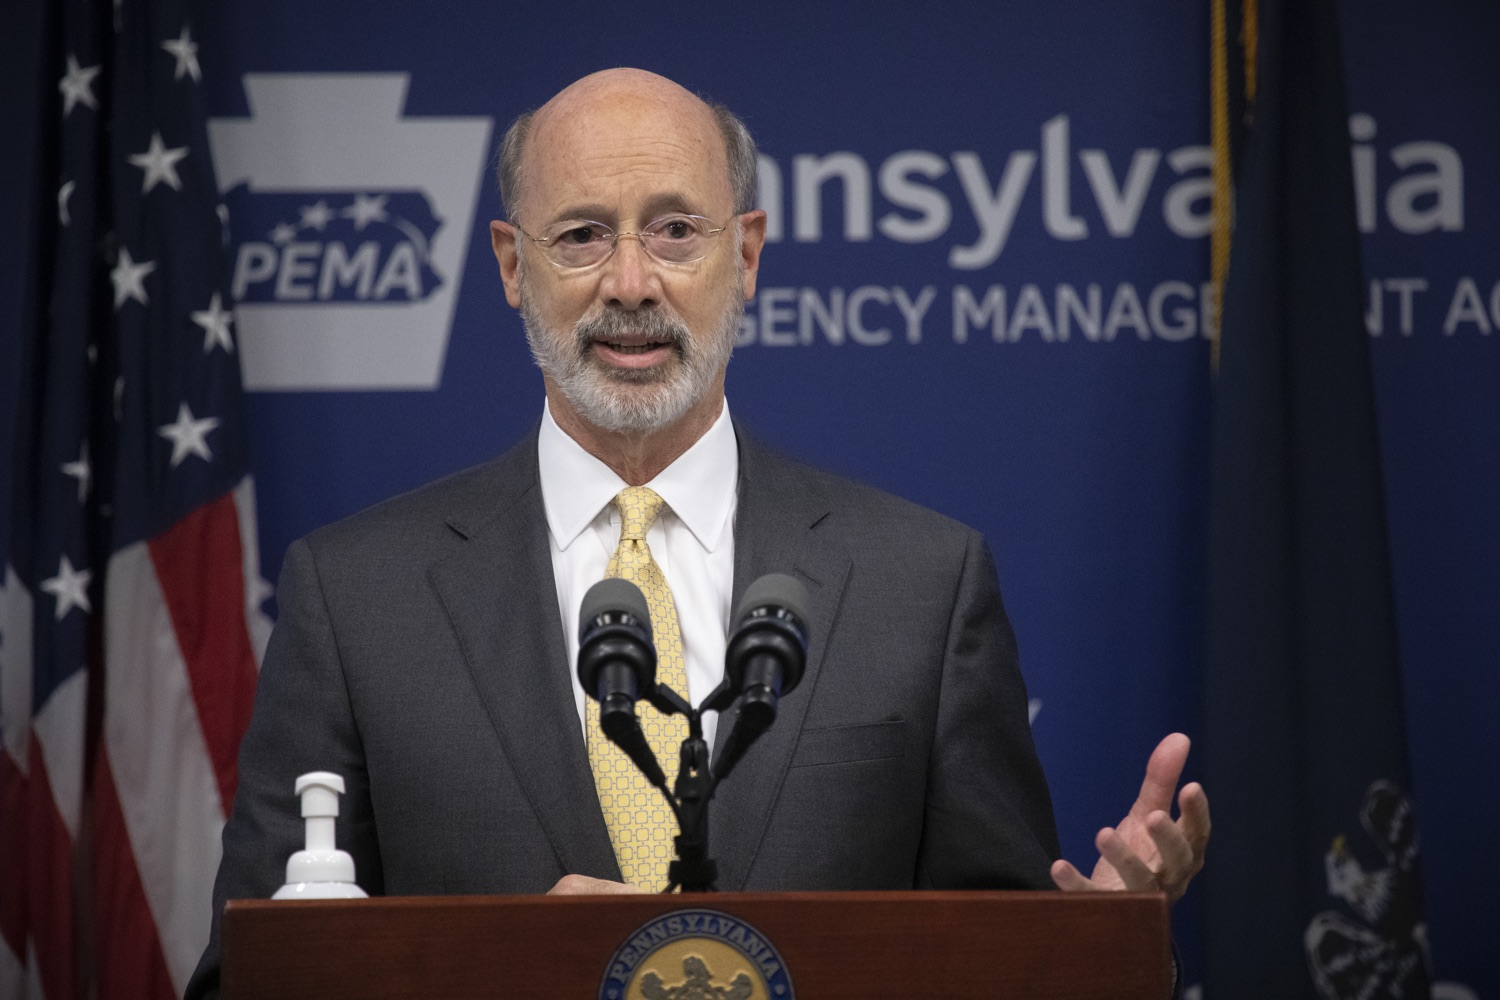 """<a href=""""https://filesource.wostreaming.net/commonwealthofpa/photo/18201_gov_orasure_dz_001.jpg"""" target=""""_blank"""">⇣Download Photo<br></a>Pennsylvania Governor Tom Wolf speaking to the press.  Today, Governor Tom Wolf announced that OraSure Technologies Inc., a developer and manufacturer of rapid diagnostic tests, collection and stabilization devices headquartered in Northampton County, will expand its manufacturing operations in the Lehigh Valley, creating 177 new, full-time jobs and retaining 233 jobs.  Harrisburg, PA  August 11, 2020"""